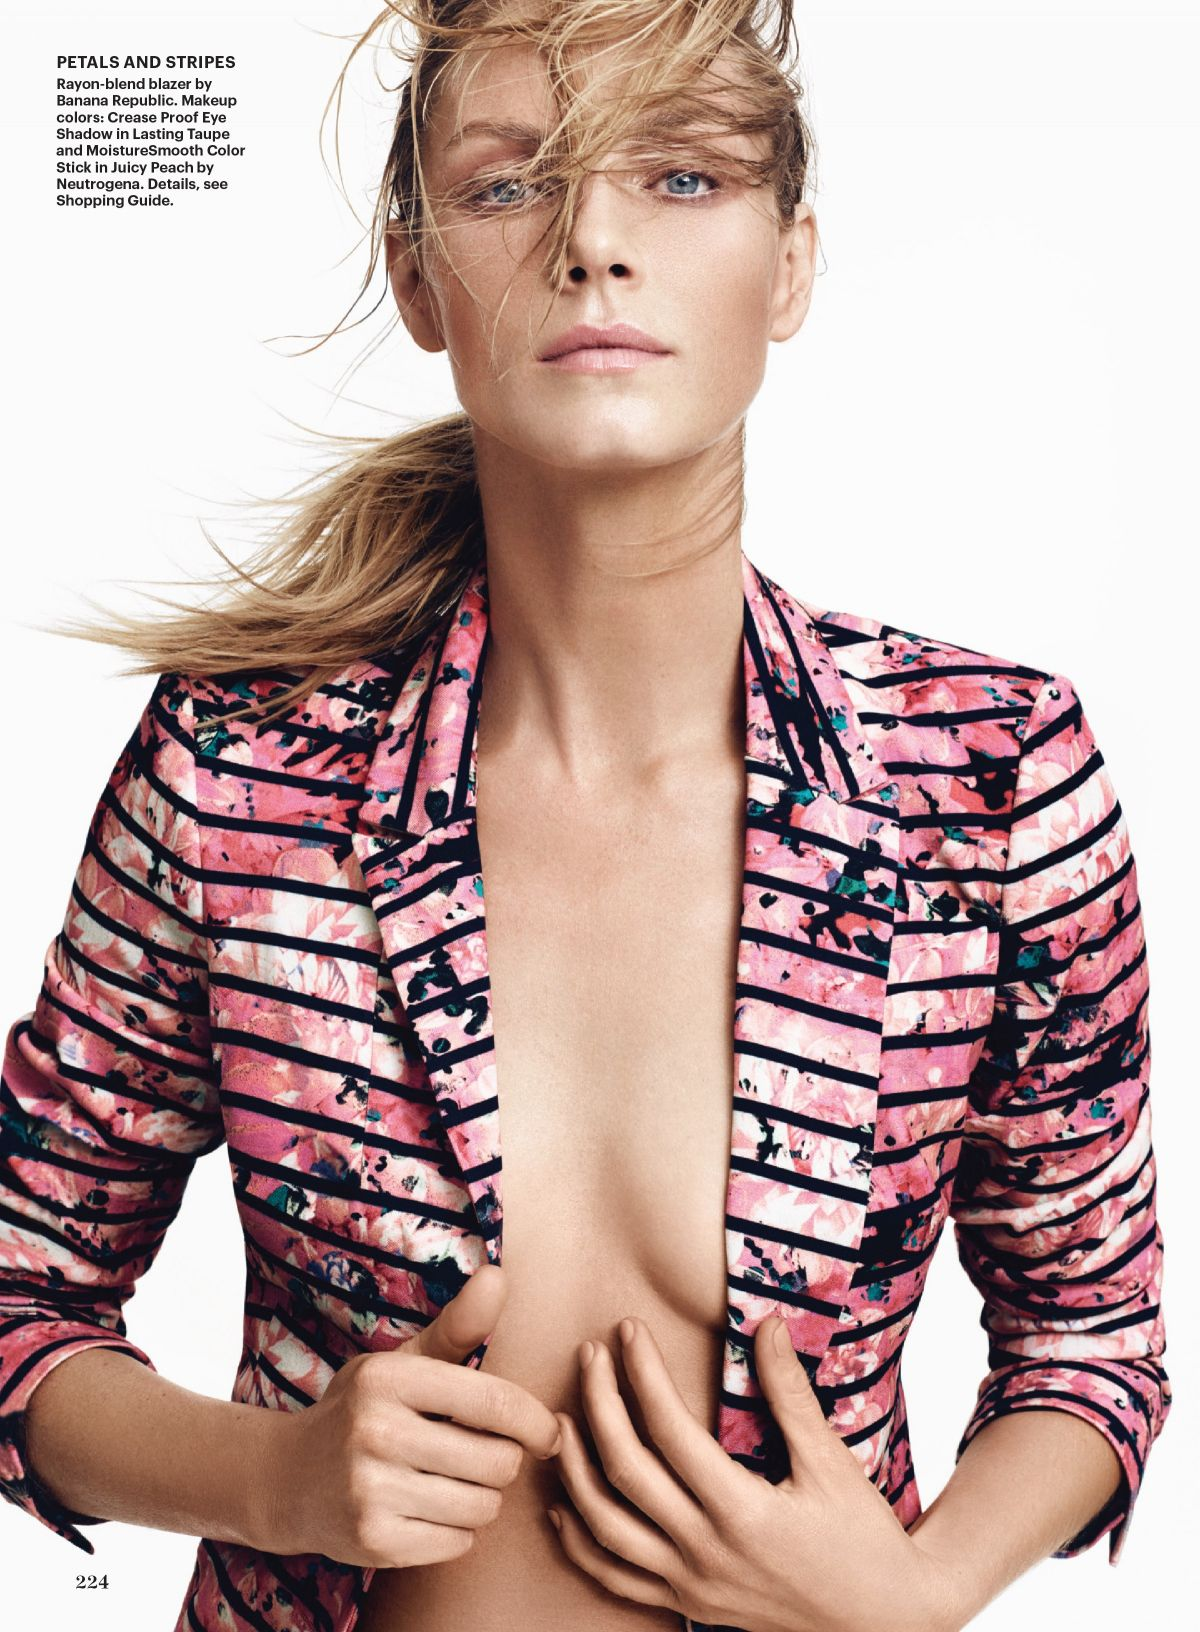 ANGELA LINDVALL in Allure Magazine, May 2014 Issue